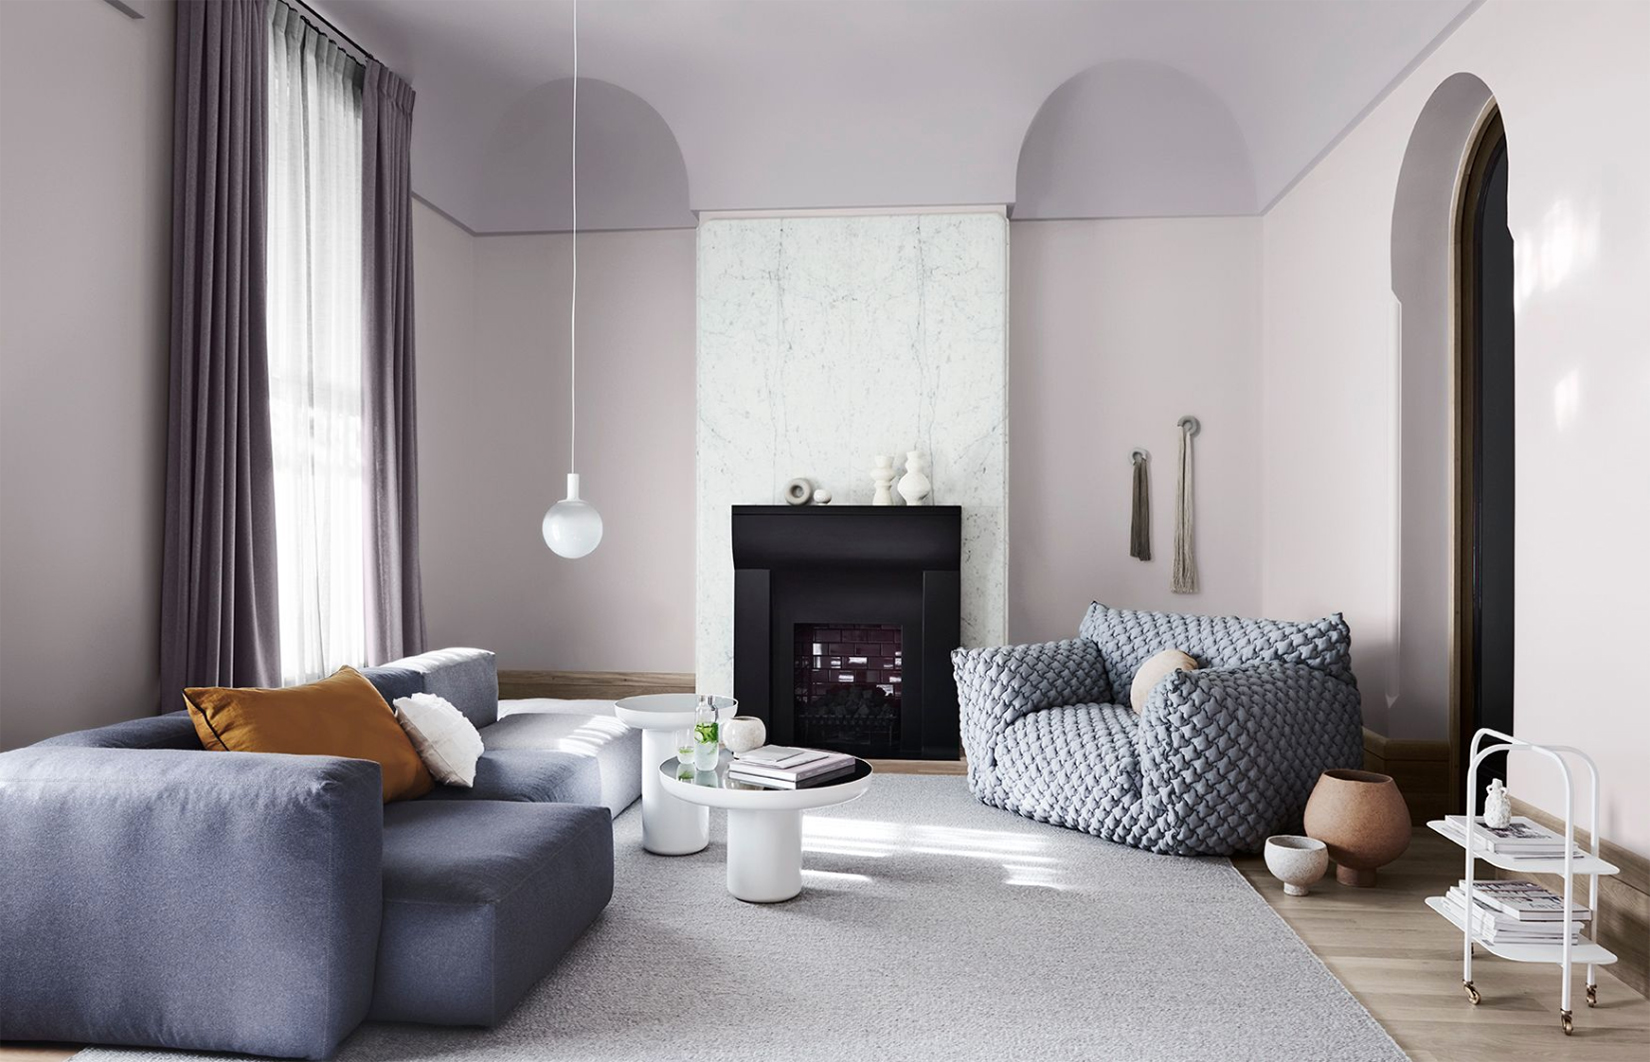 Dulux Colour Forecast 2019 - Wholeself